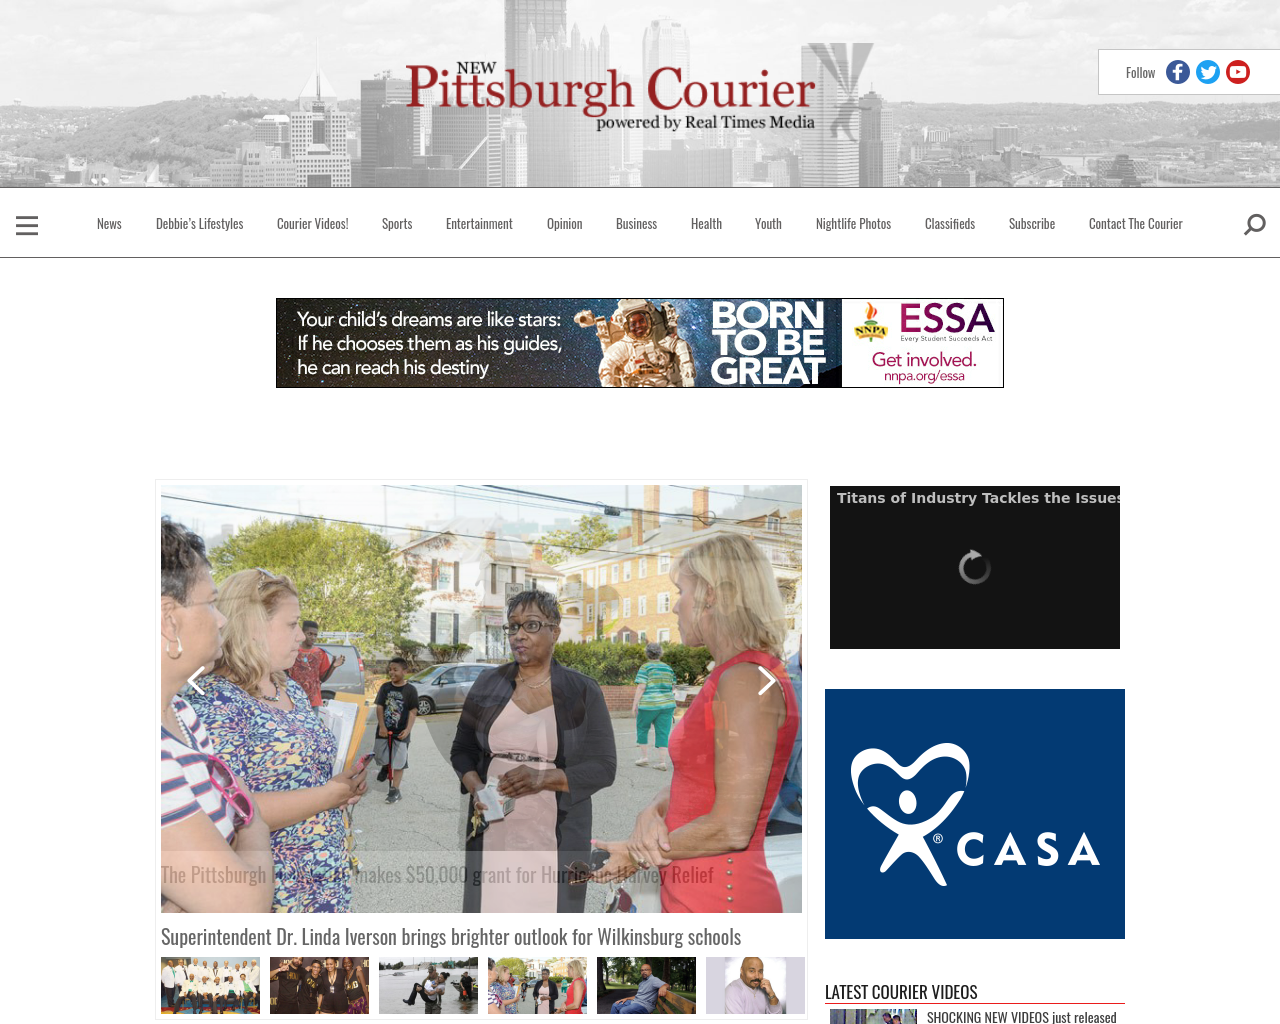 New-Pittsburgh-Courier-Advertising-Reviews-Pricing